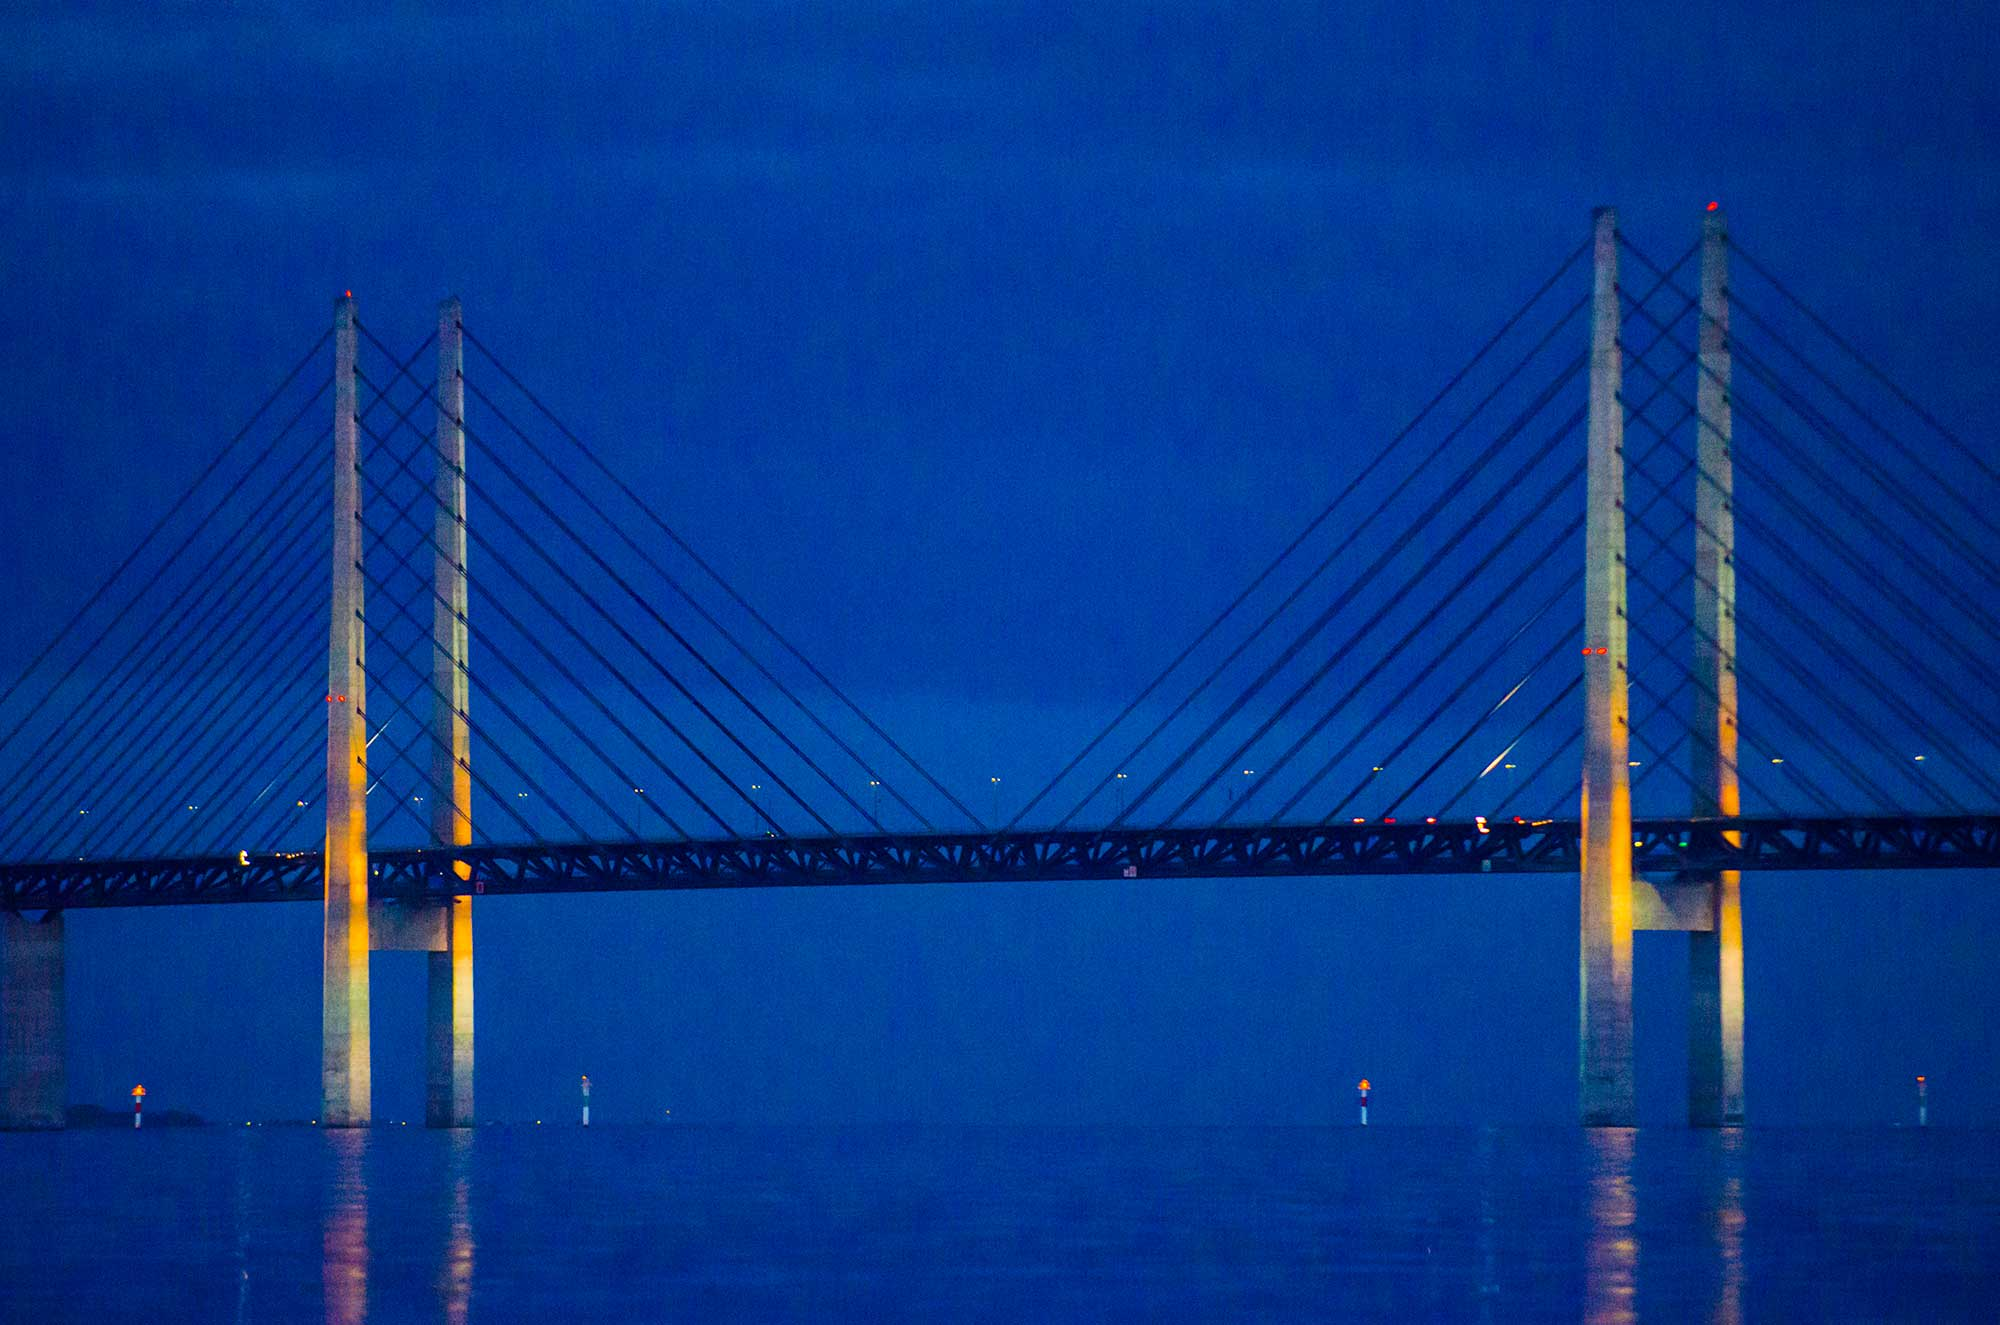 Øresund Bridge at Night with lights on - krestenhillerup.dk